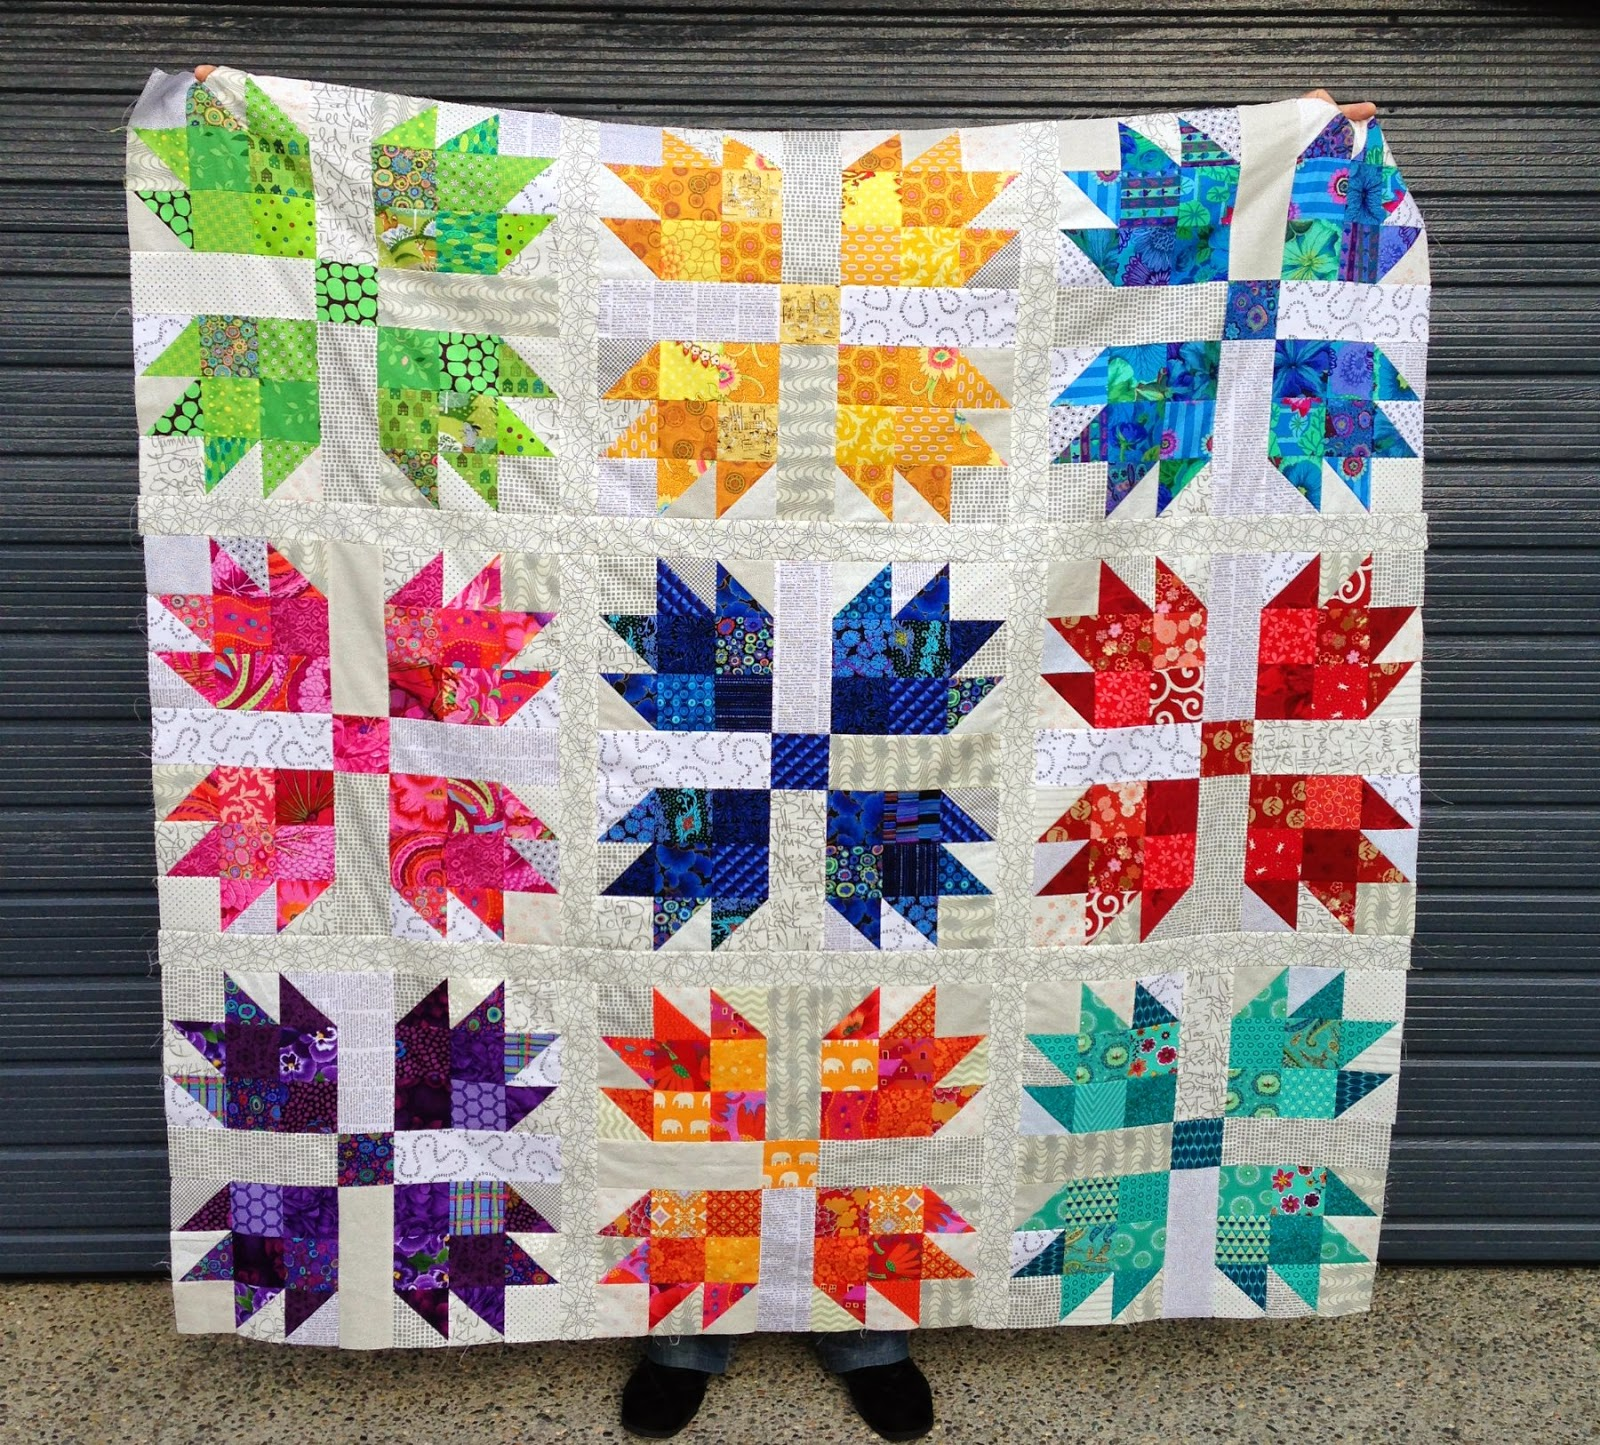 Wendy's quilts and more: Scrappy Bear Paw Quilt : bear claw quilt pattern - Adamdwight.com